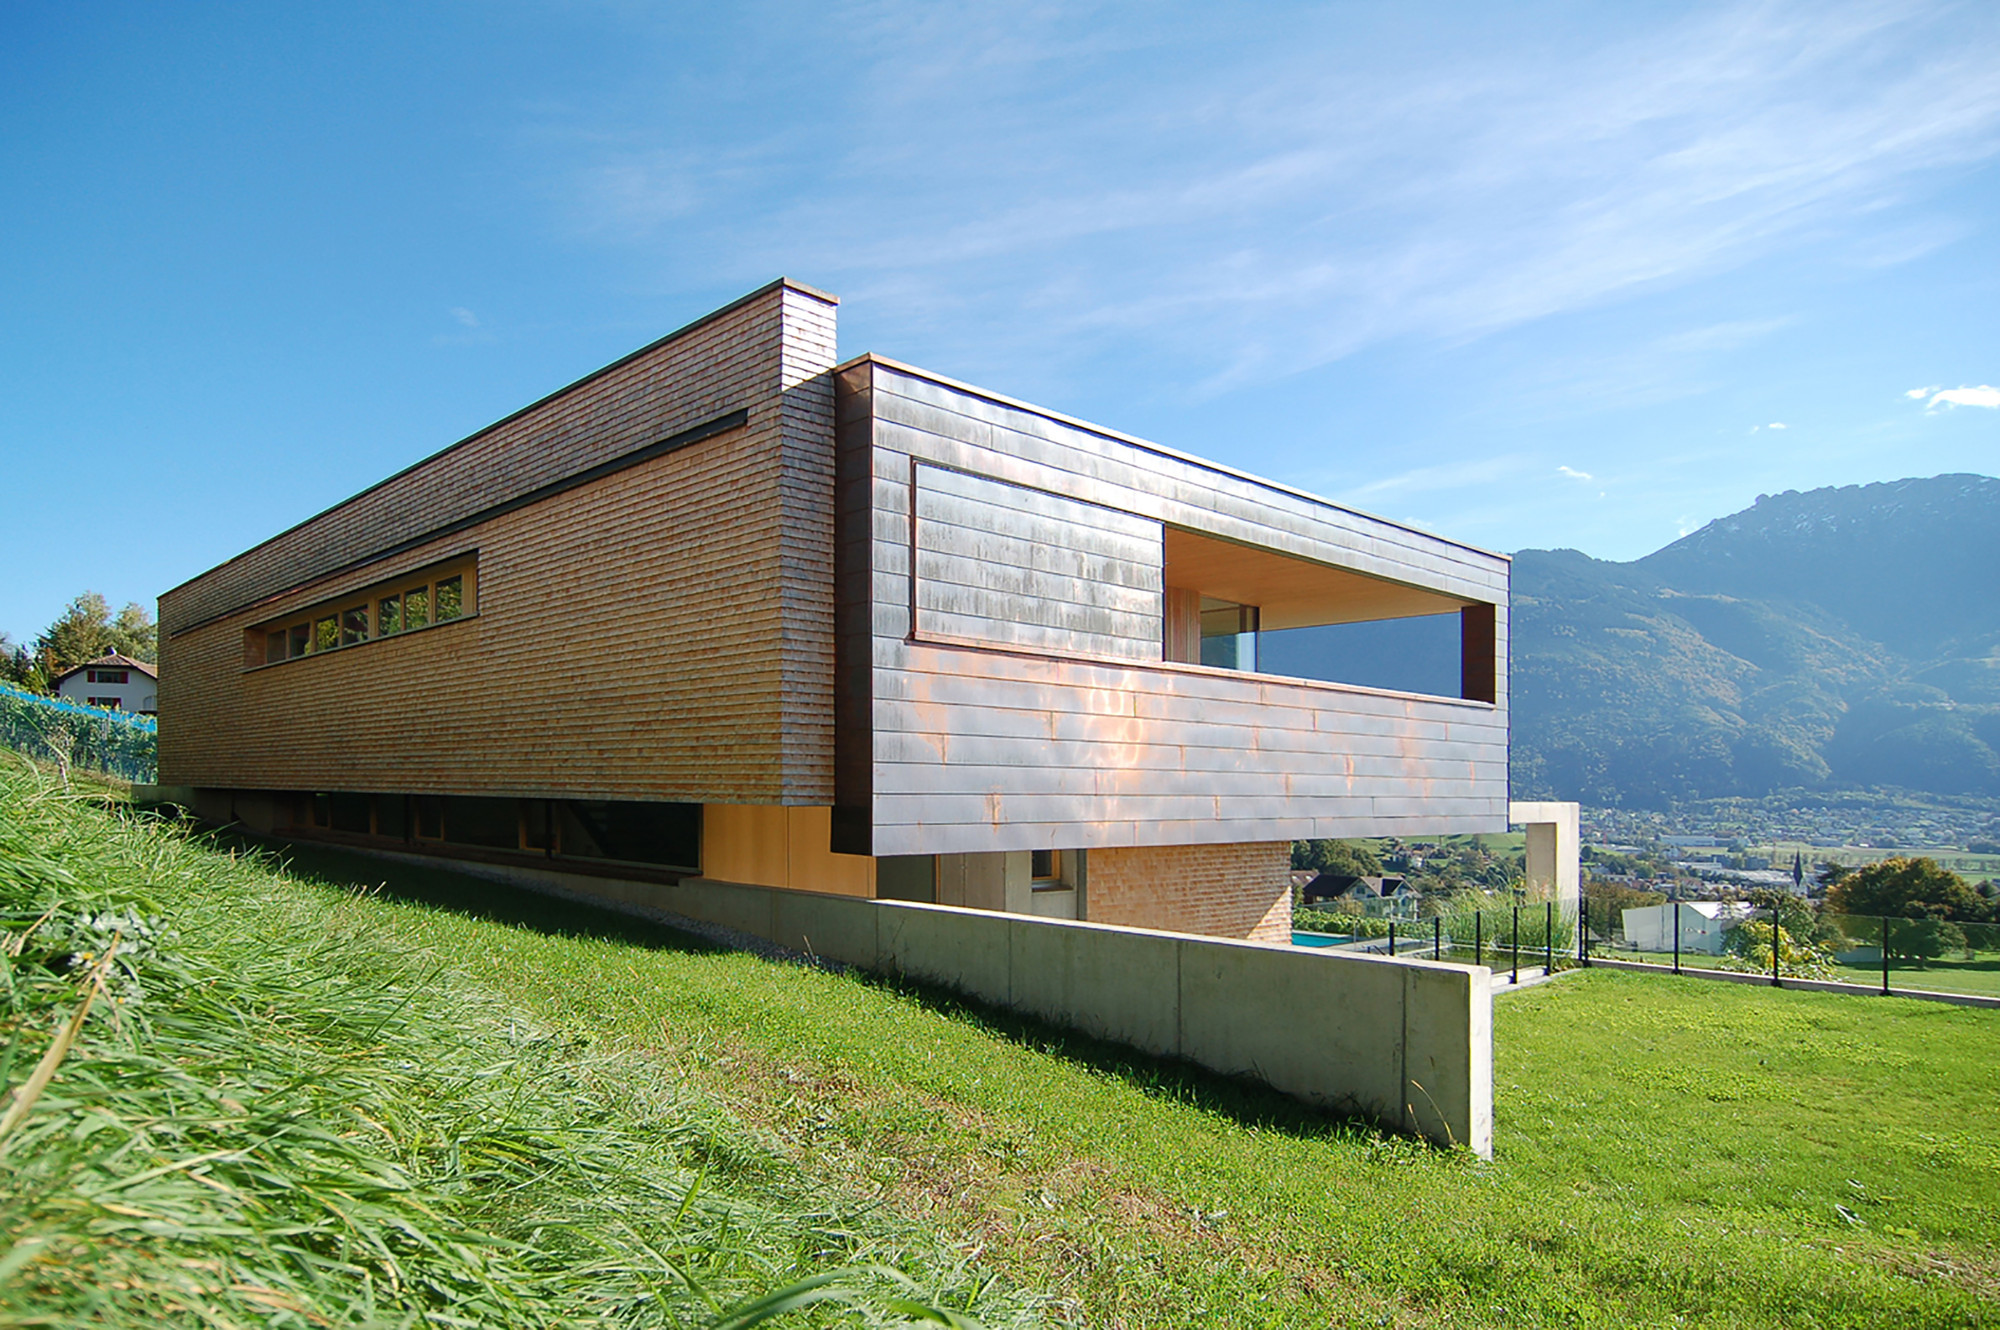 House Liechtenstein / k_m architektur, Courtesy of k_m architektur